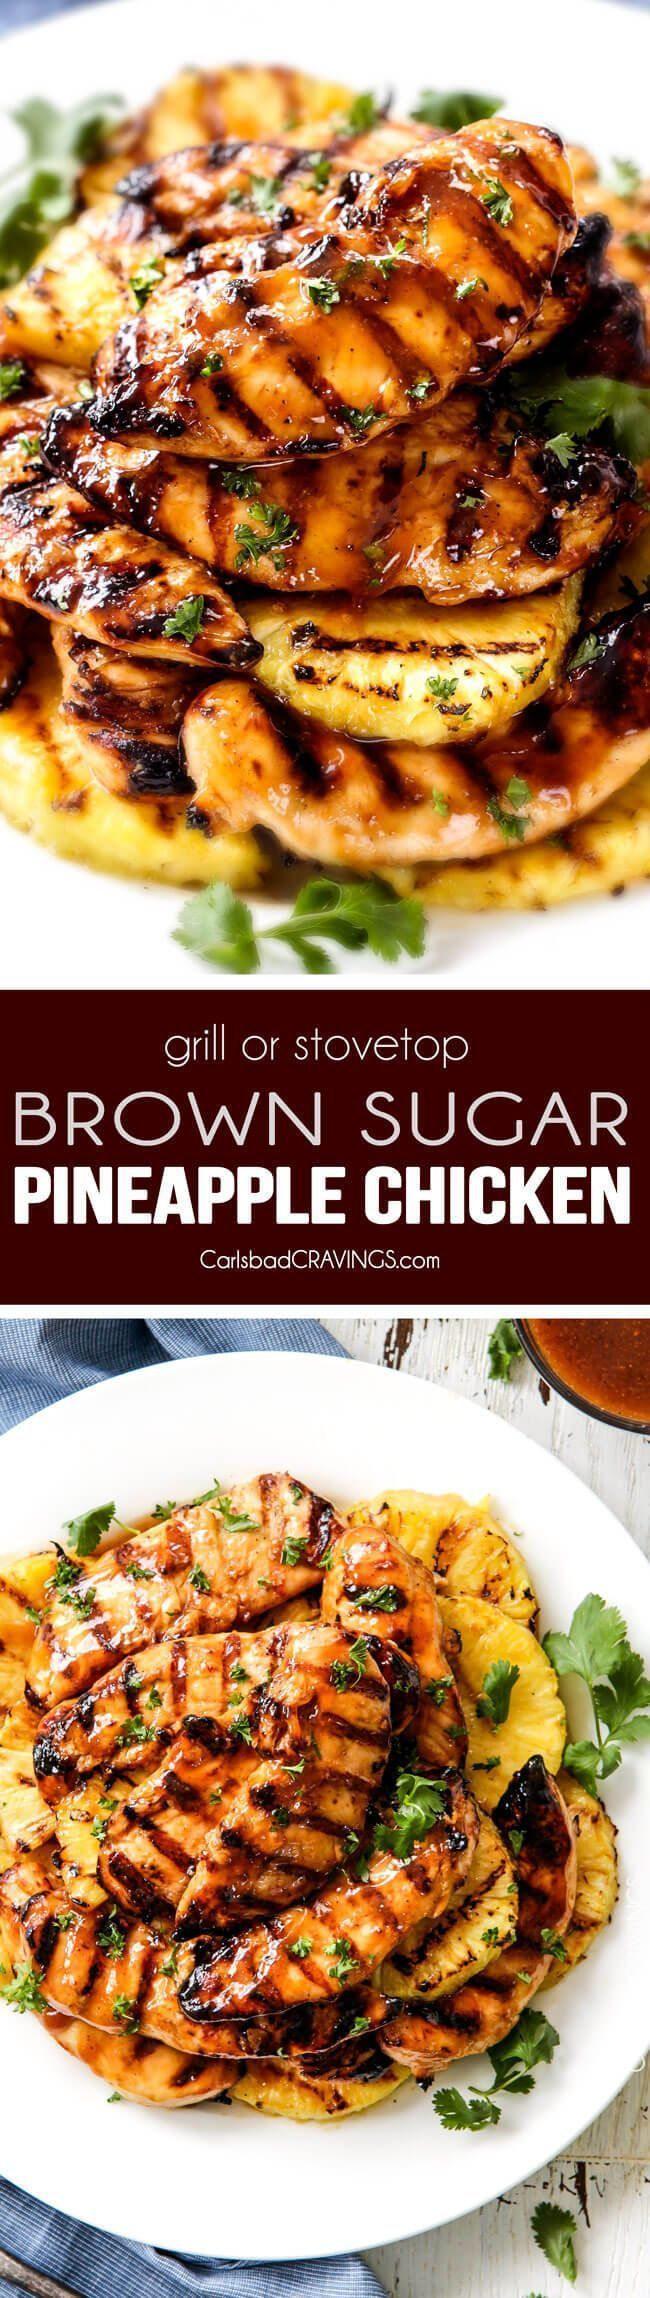 Stove Top or Grilled Brown Sugar Pineapple Chicken - just 10 minutes prep for this easy, flavor bursting chicken! The sweet and tangy flavor is amazing with just the right amount of chili kick and the marinade doubles as an incredible glaze that I love adding to my rice! This is the BEST Hawaiian Chicken! via /carlsbadcraving/